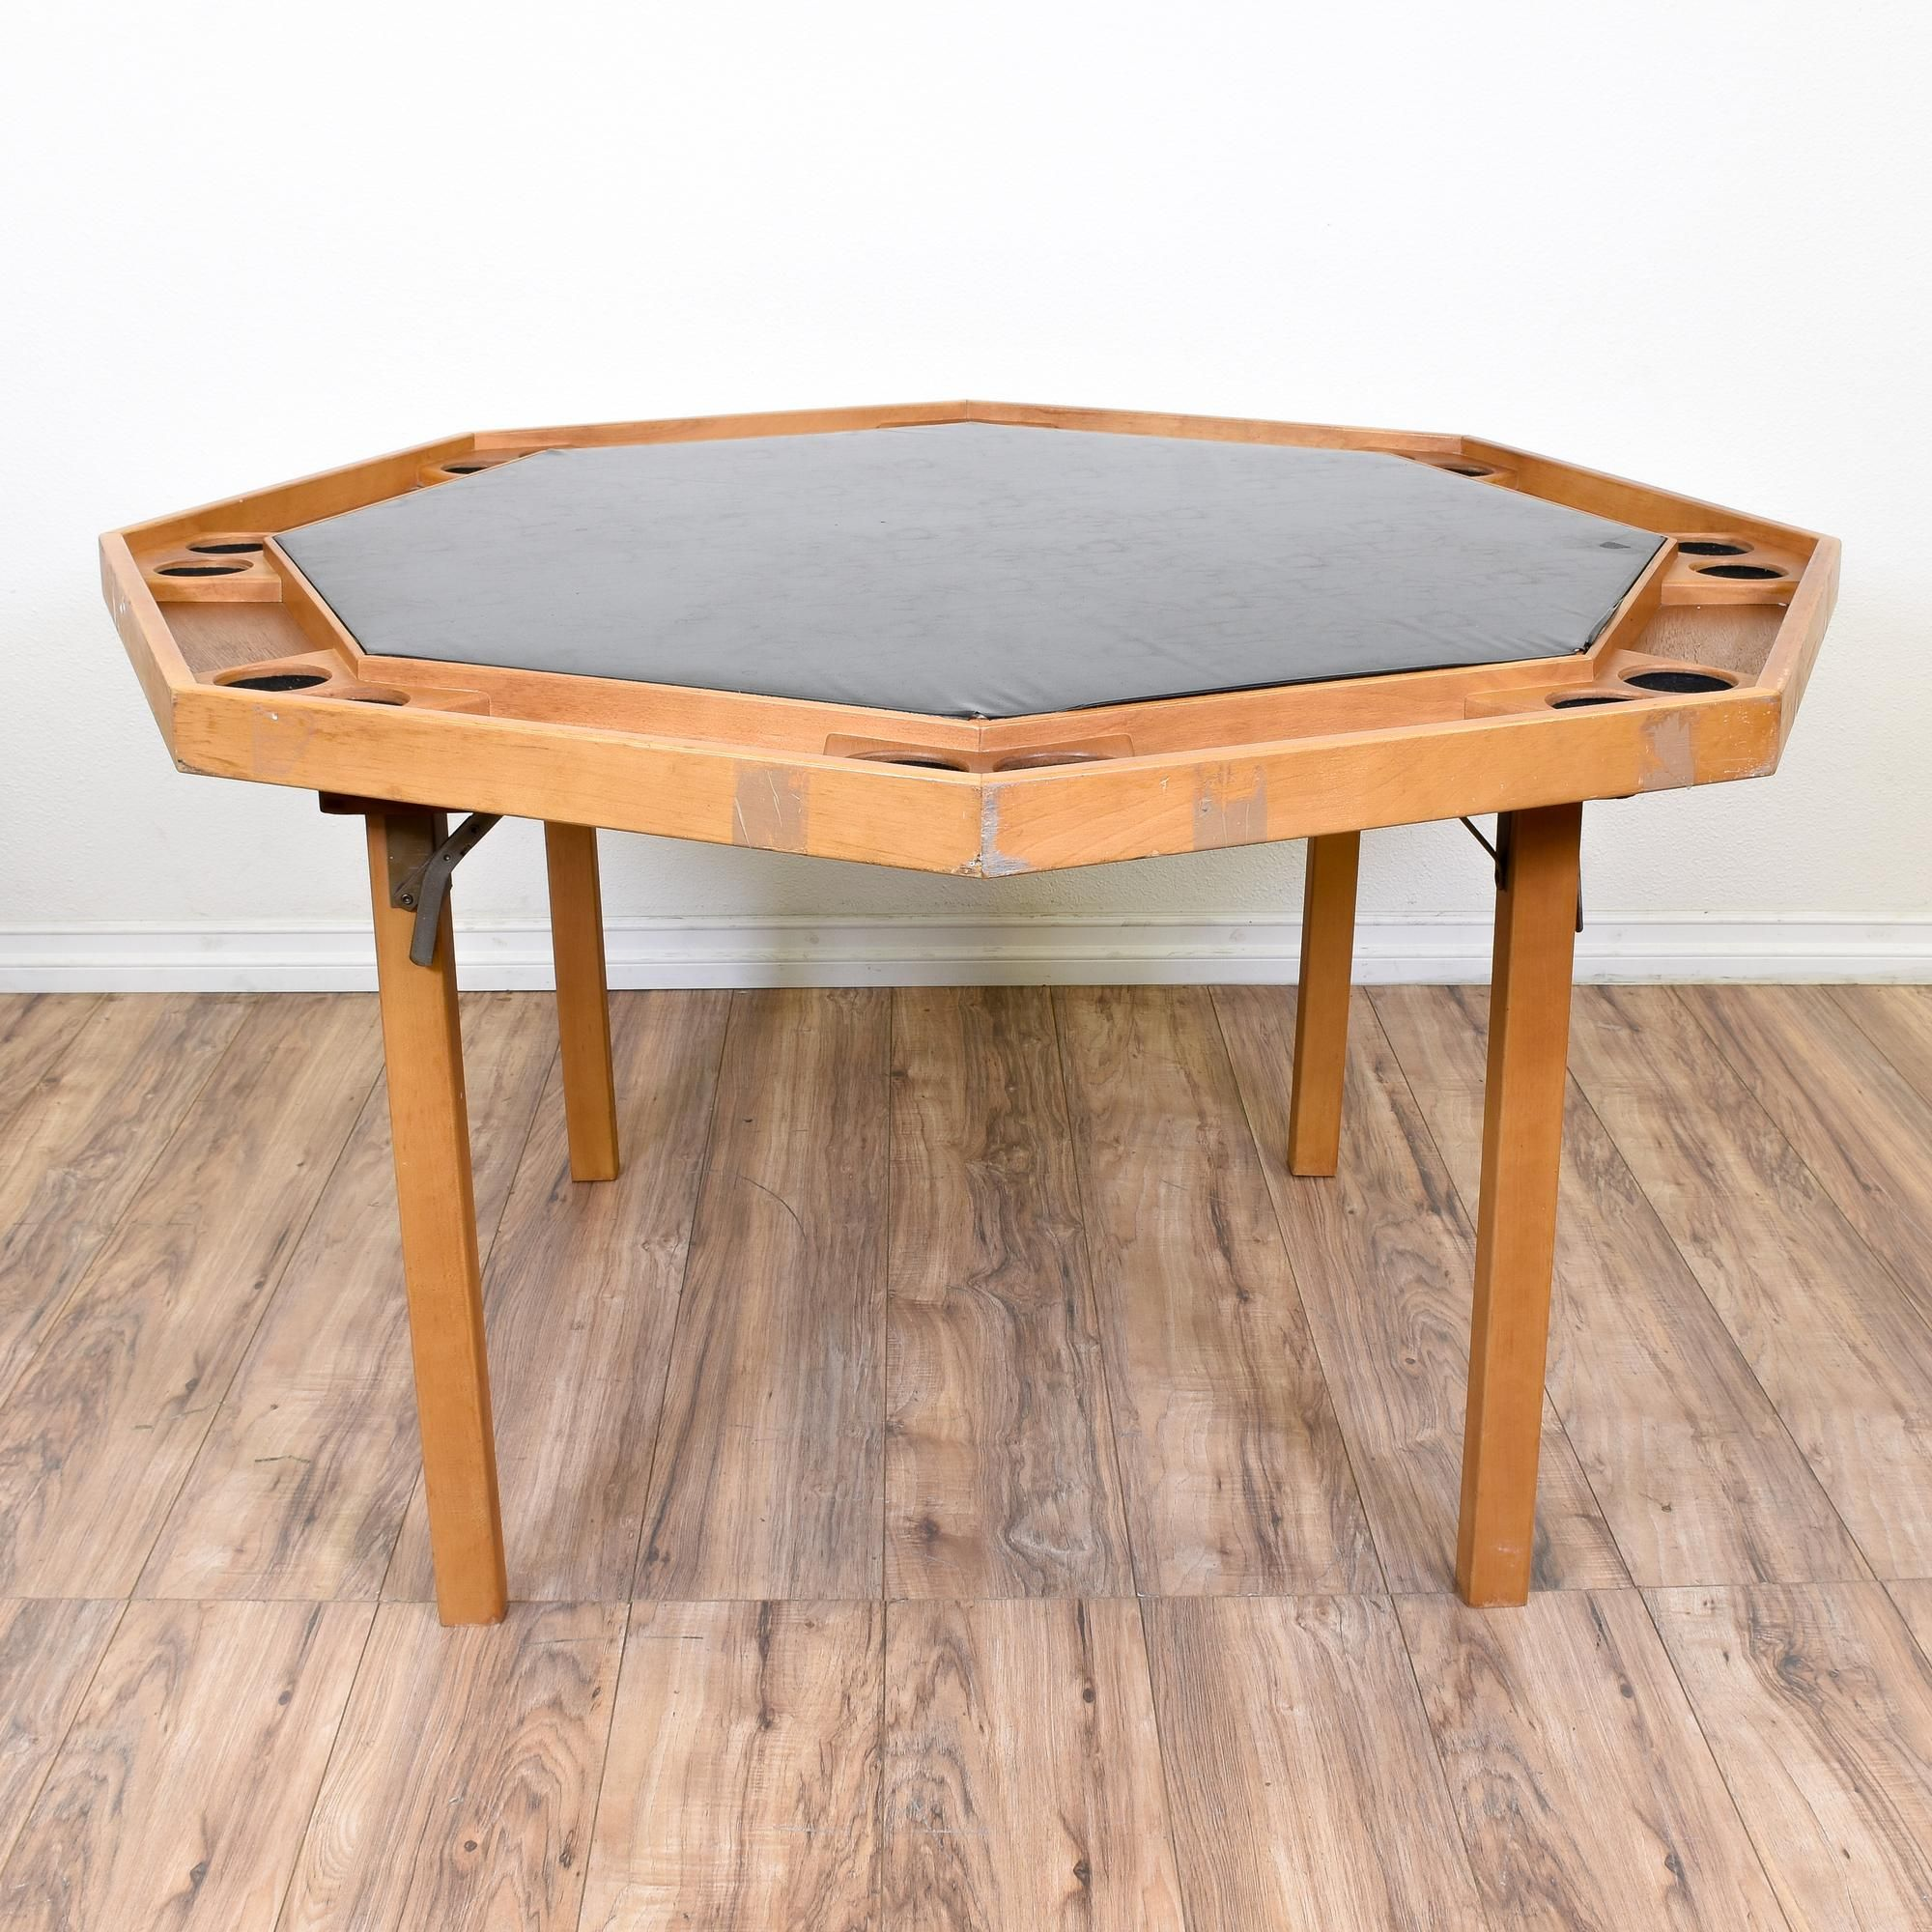 This folding game table is featured in a solid wood with a raw